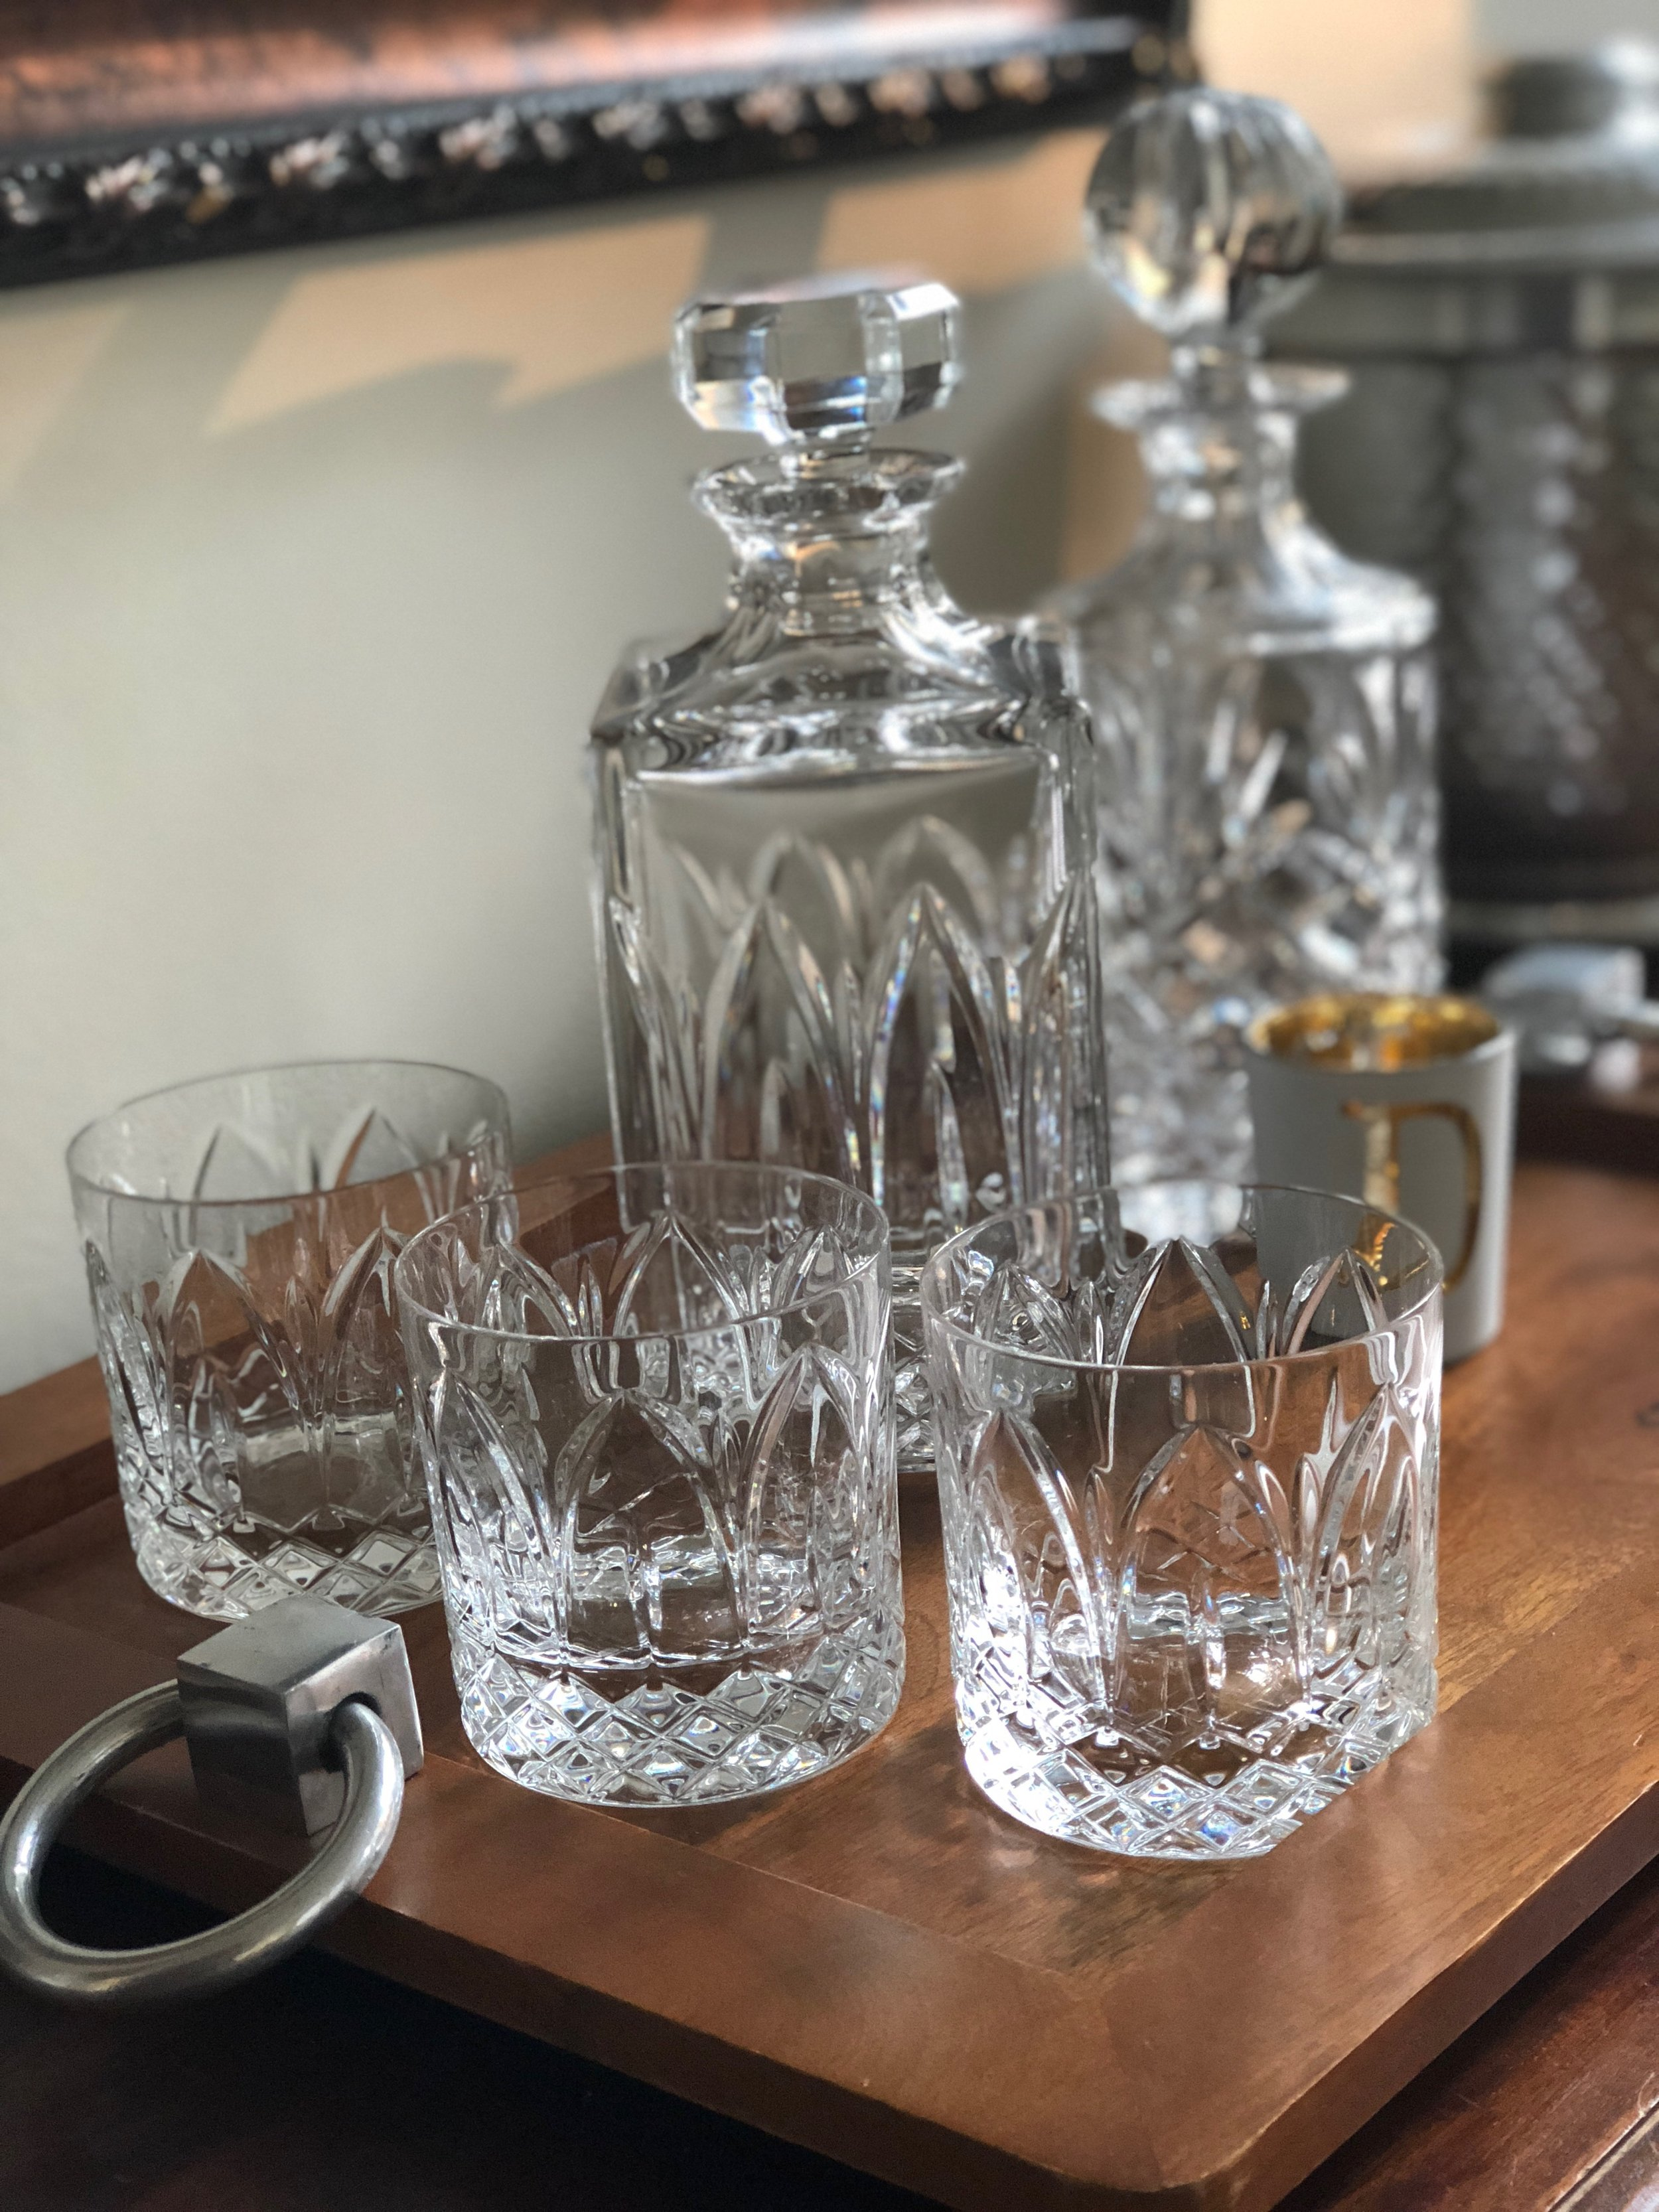 There is just something about pouring our favorite cocktail libations out of these beautiful decanters. Our full lead crystal Chartres decanter and old fashioned glasses are by Vista Alegra.